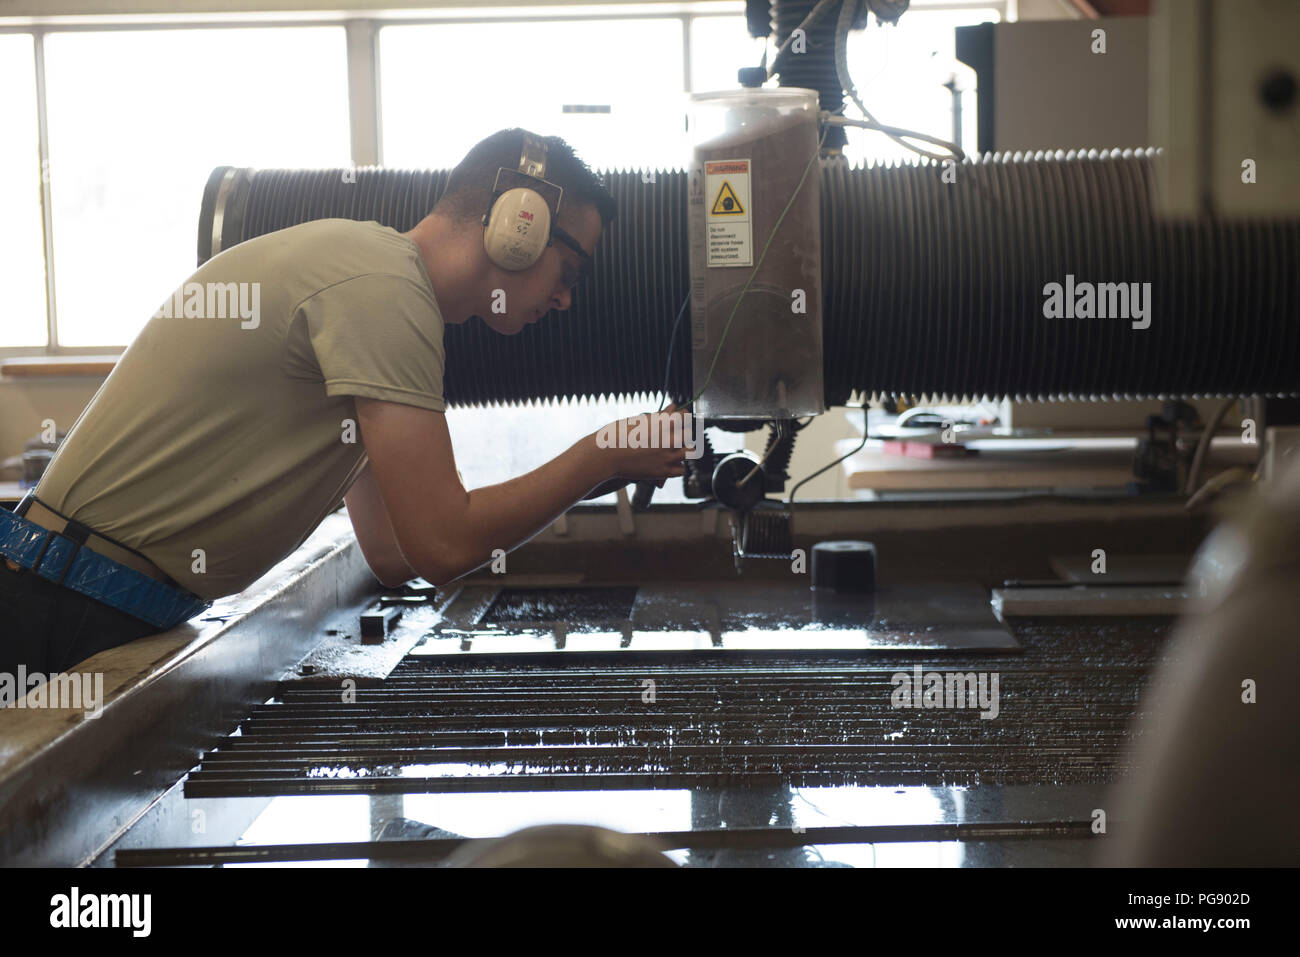 Water Jet Cutting Stock Photos & Water Jet Cutting Stock Images - Alamy